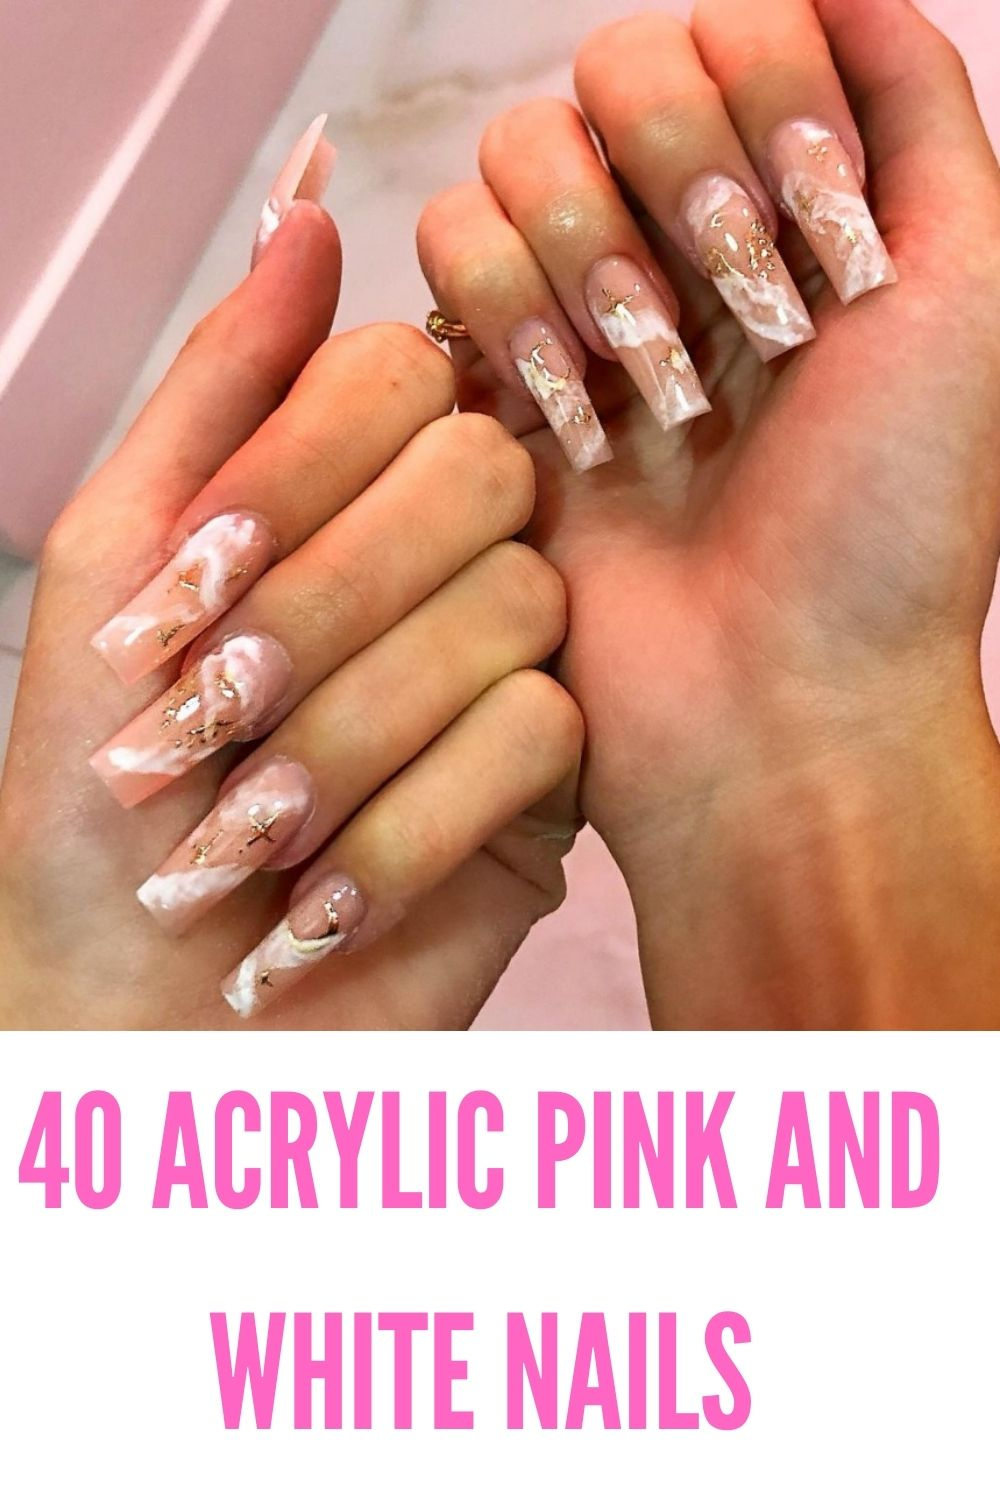 Elegant Pink And White Nails For Graduation In 2021!